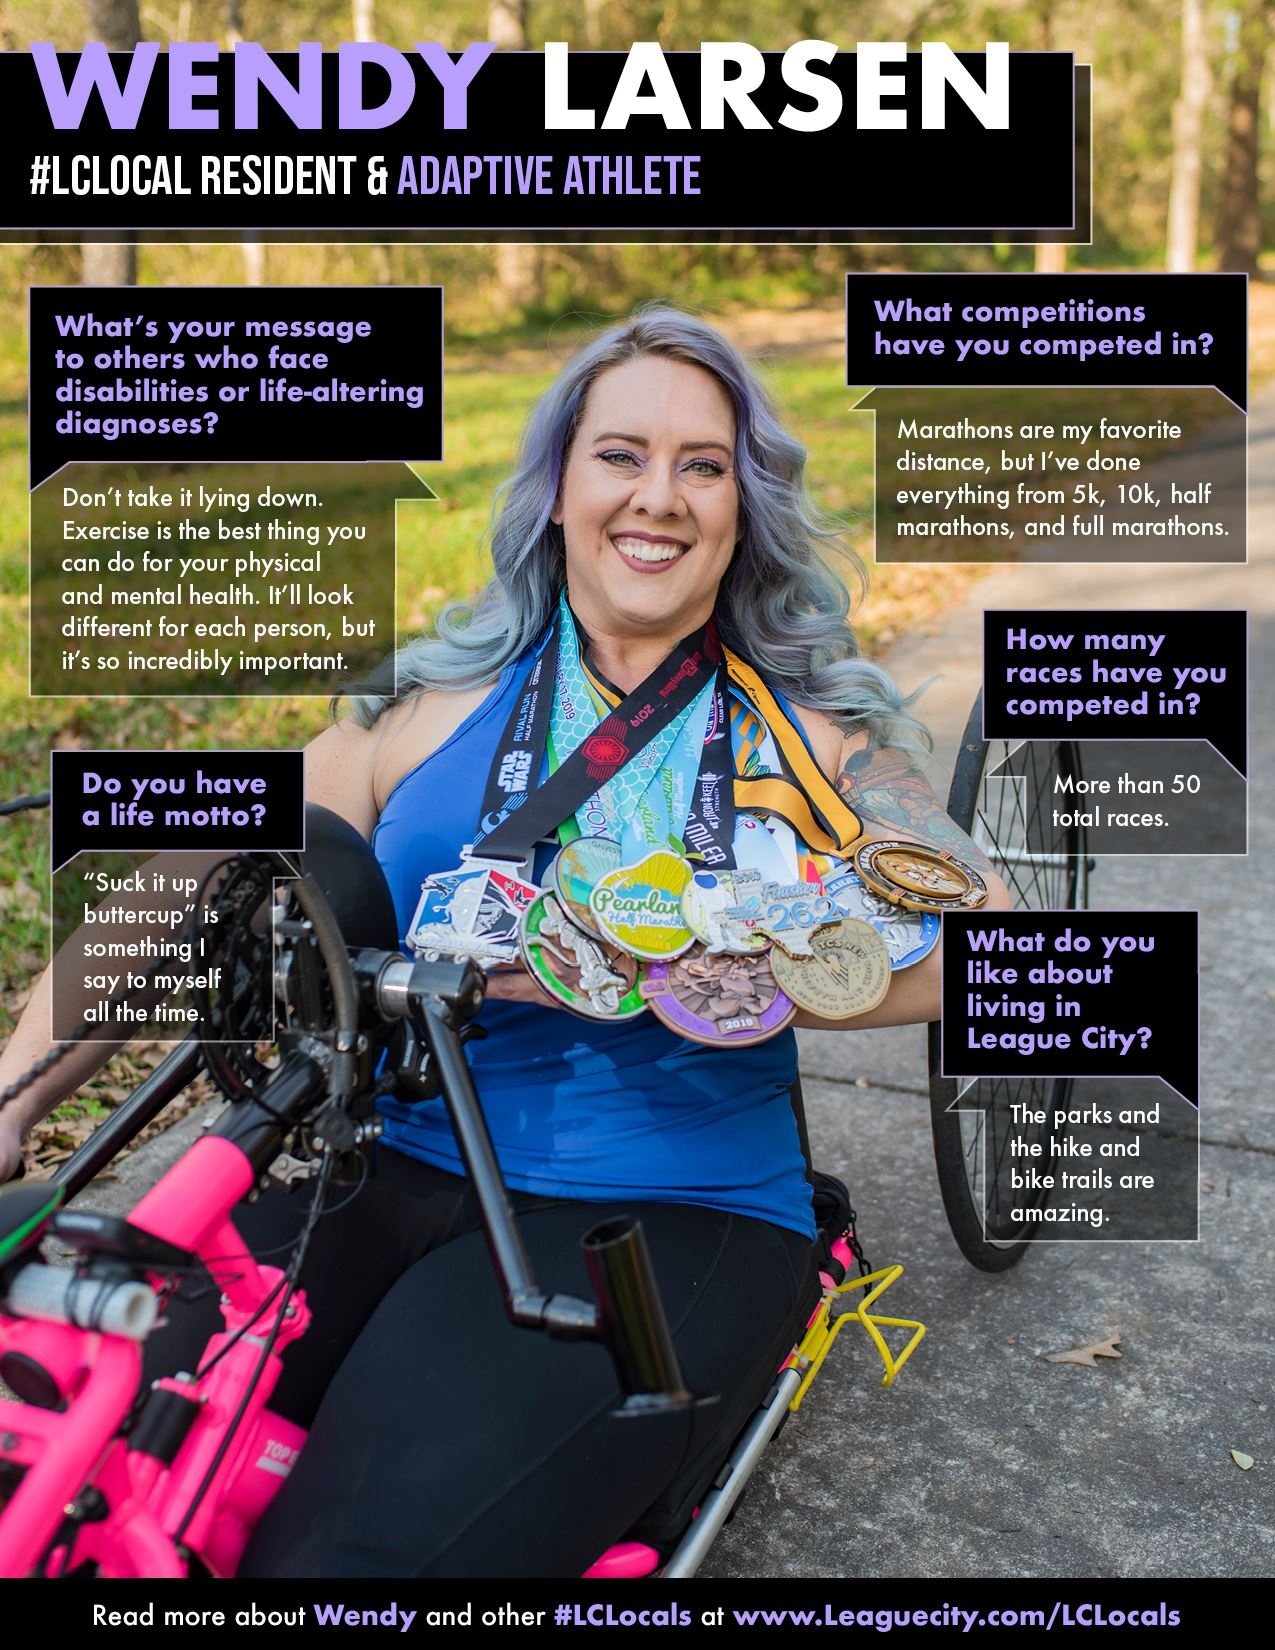 a woman with purple hair posing in with medals in her handcycle